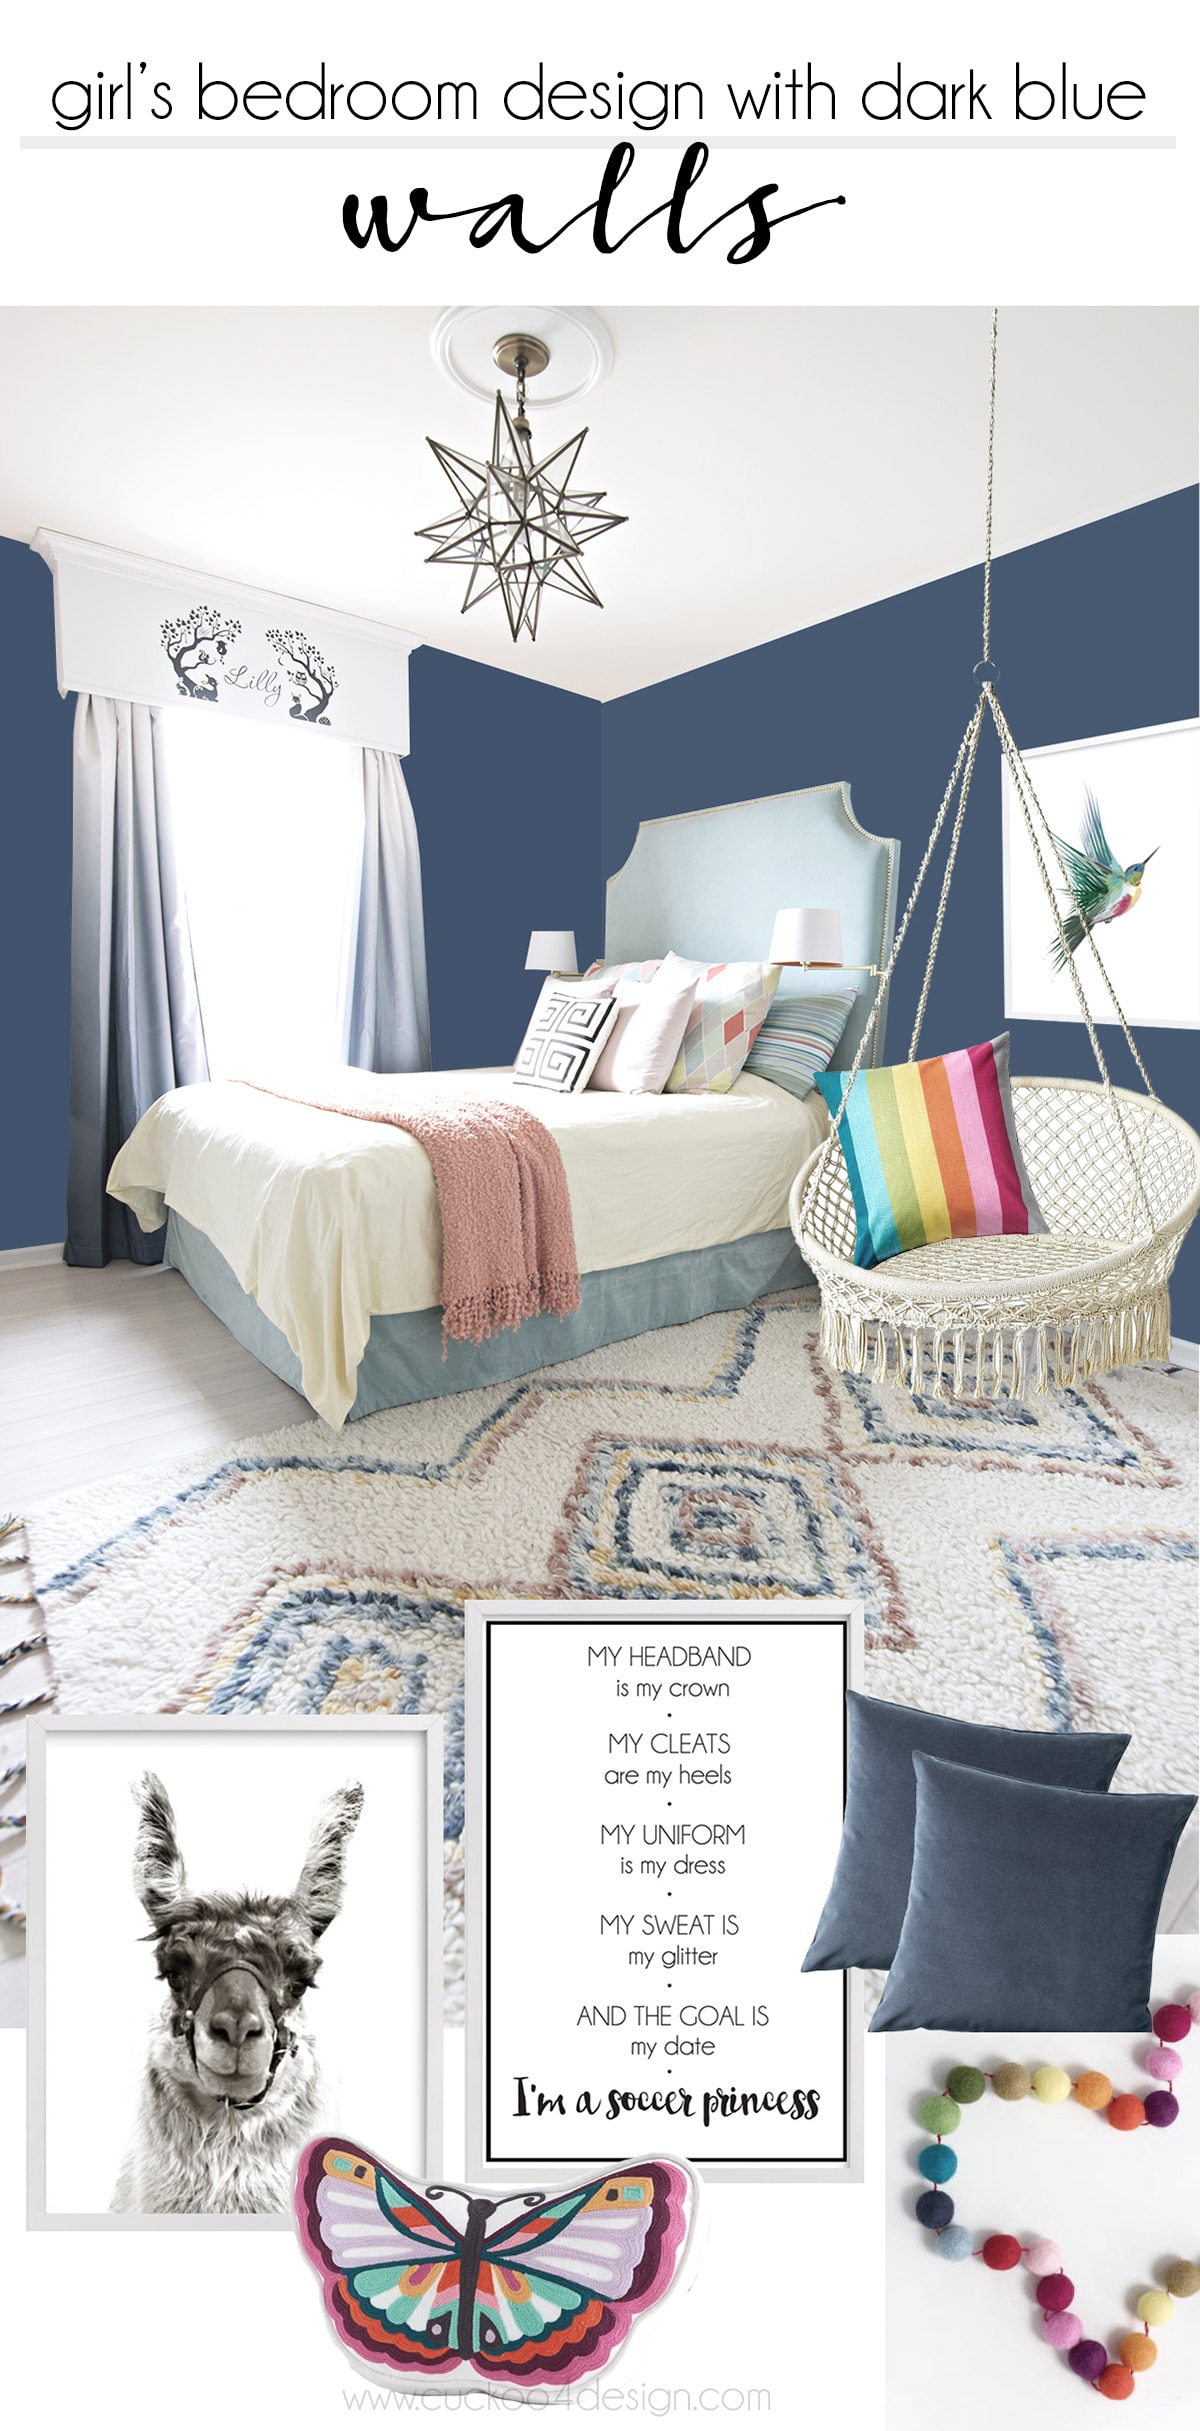 Girls bedroom with Dark Blue Walls | Cuckoo4Design